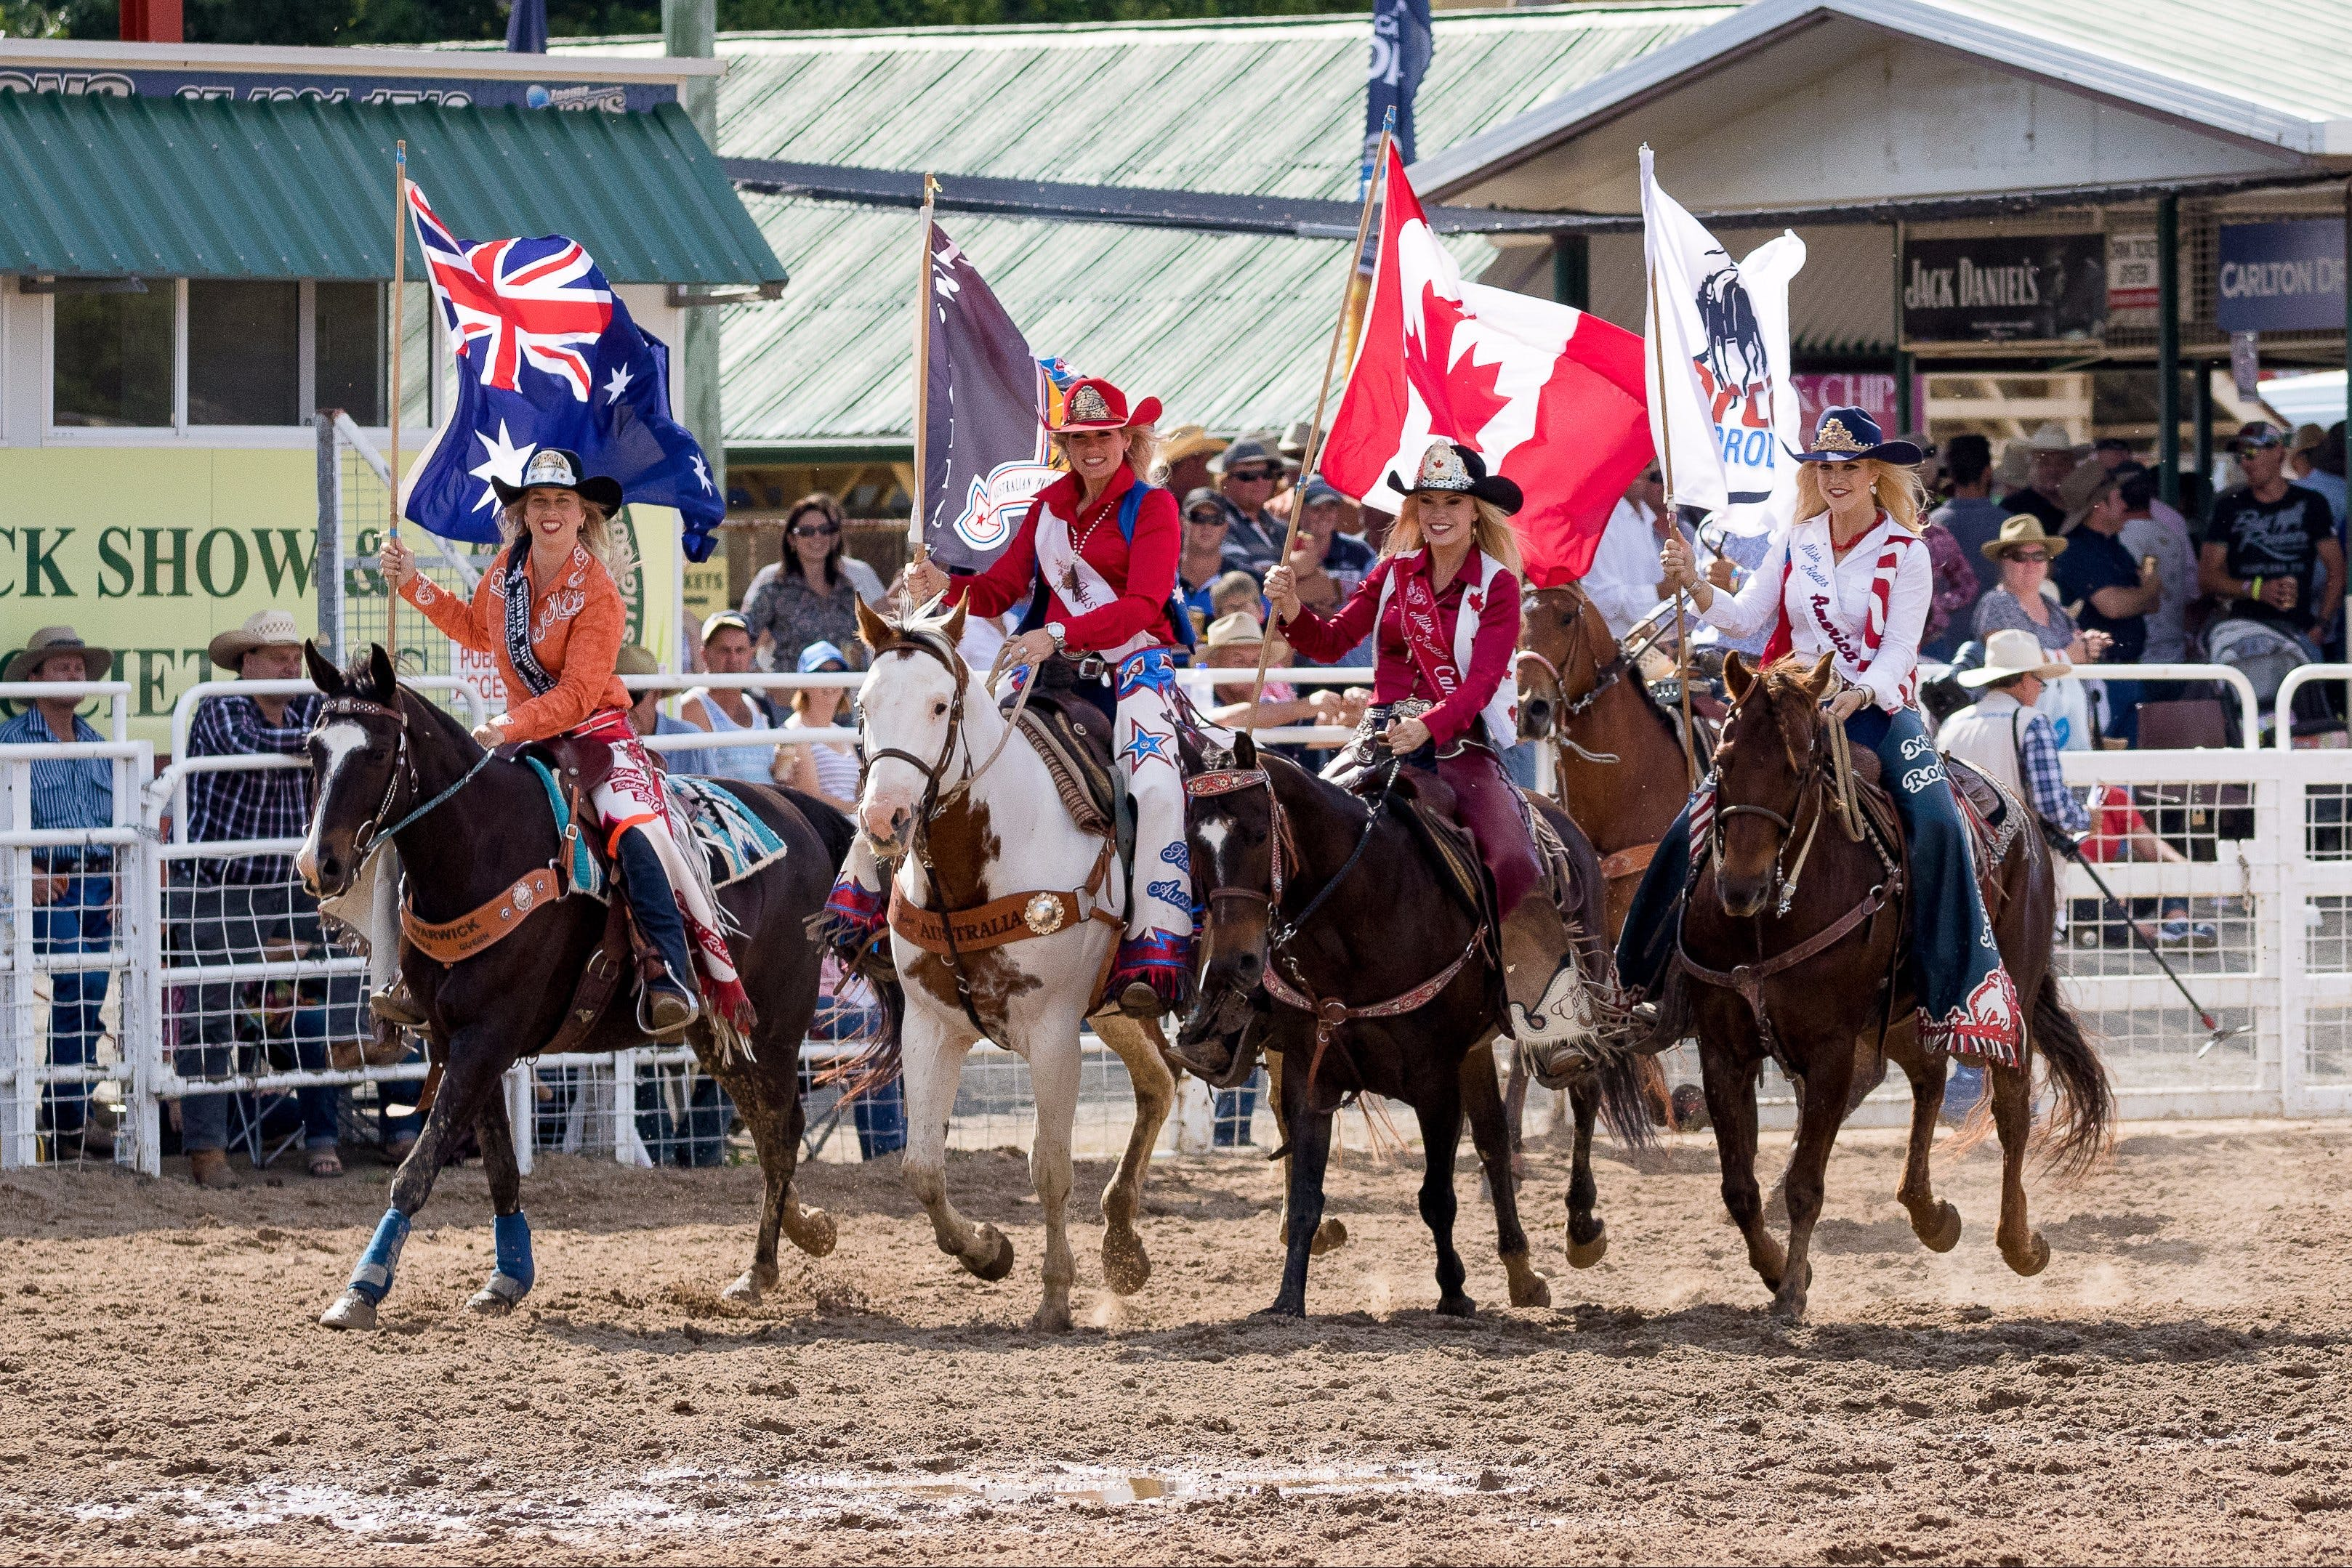 Warwick Rodeo National APRA National Finals and Warwick Gold Cup Campdraft - VIC Tourism